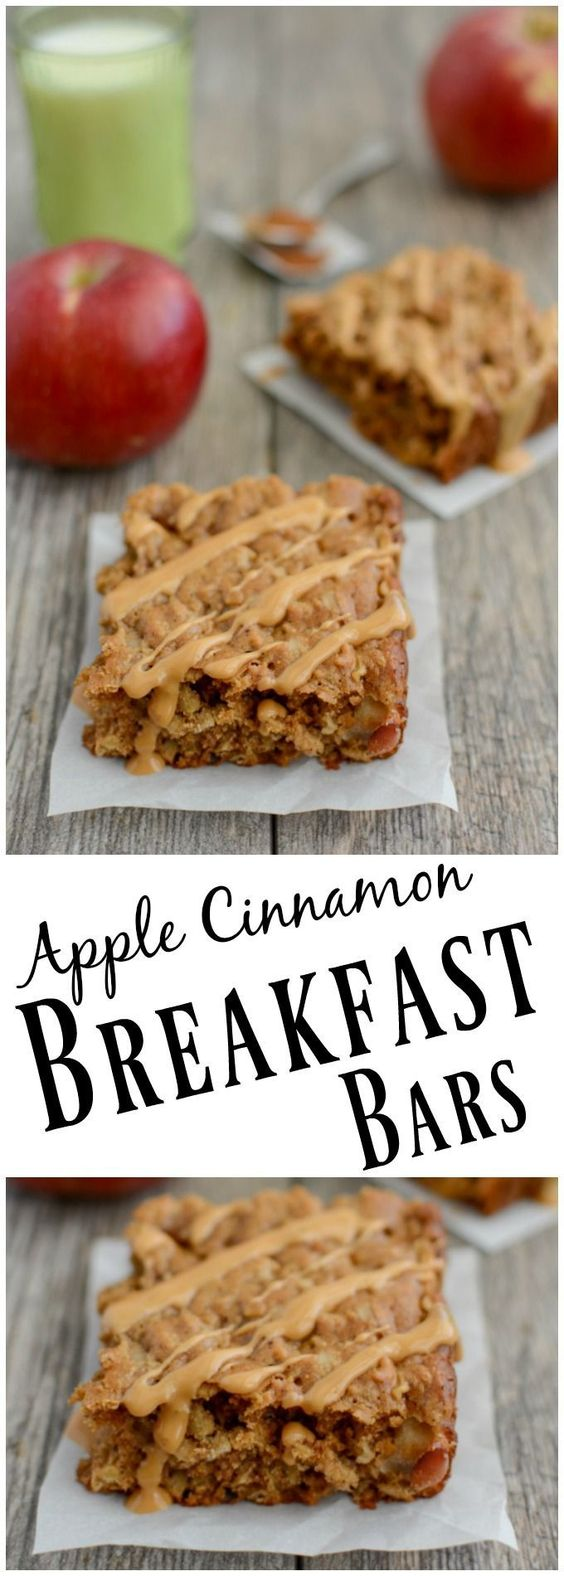 APPLE CINNAMON BREAKFAST BARS #apple #cinnamon #breakfast #breakfastideas #bars #healthysnack #healthysnackideas #healthyfood #healthyrecipes